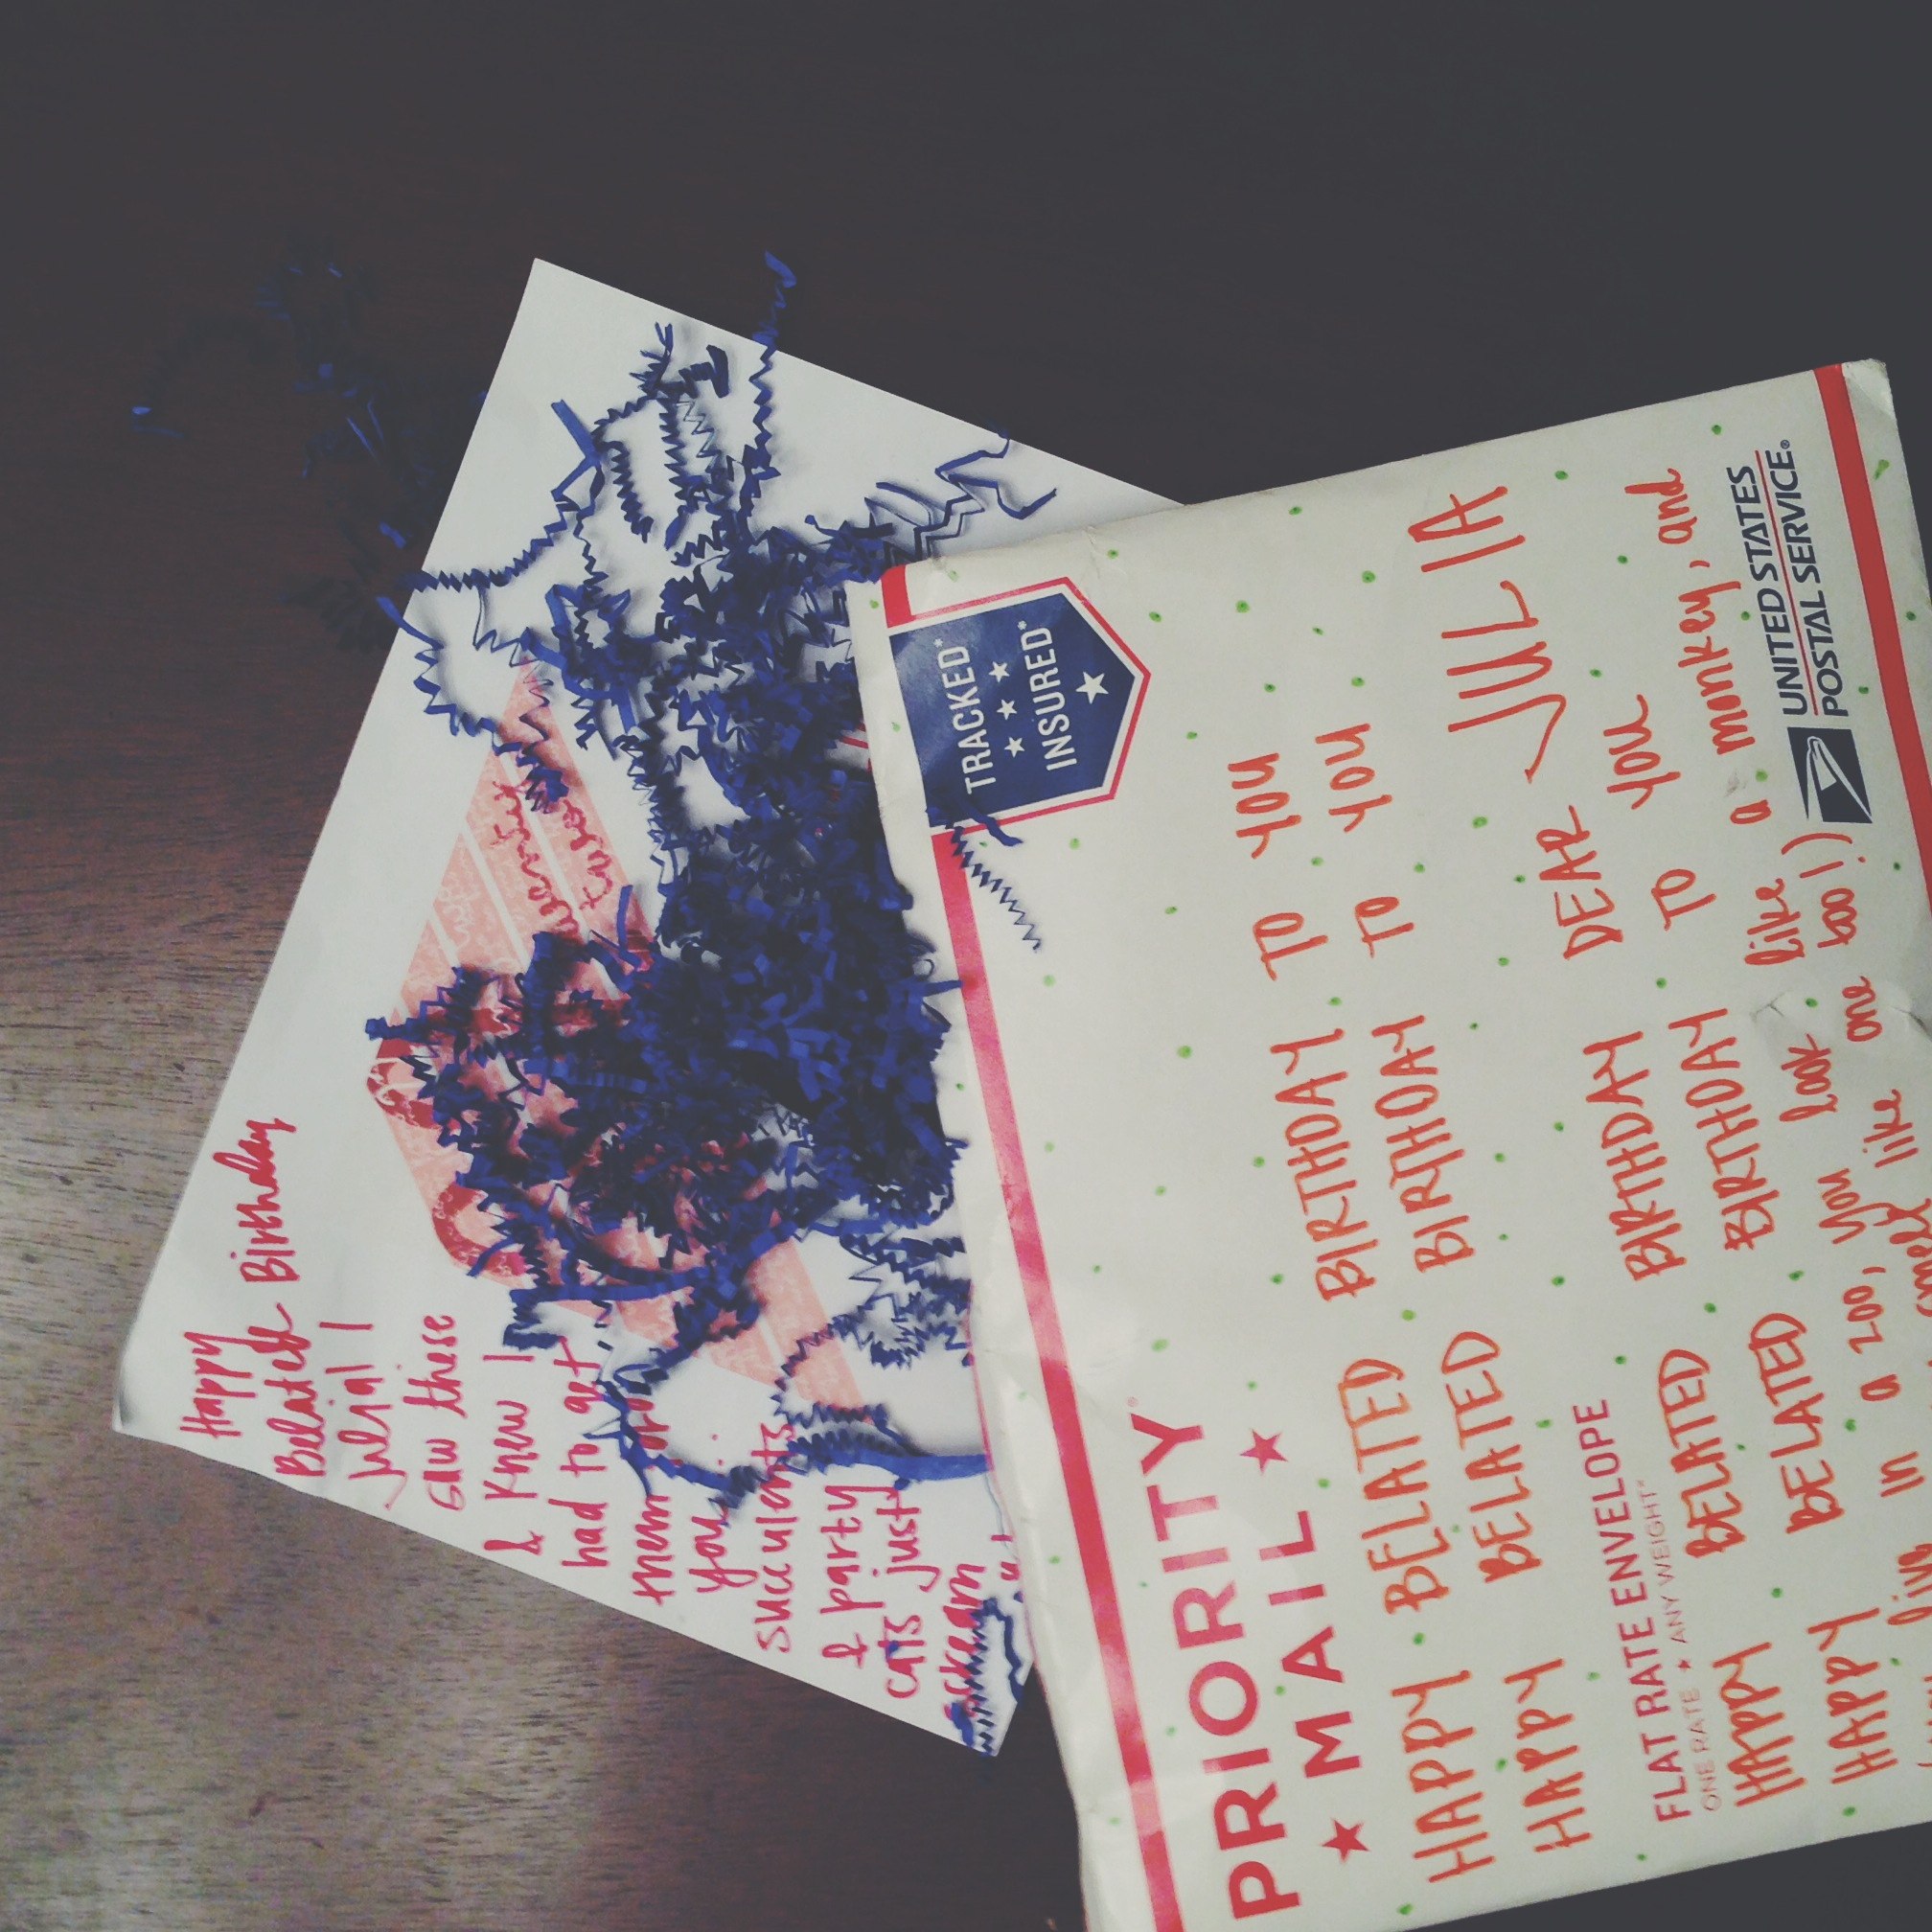 Birthday mail was awaiting at home <3.